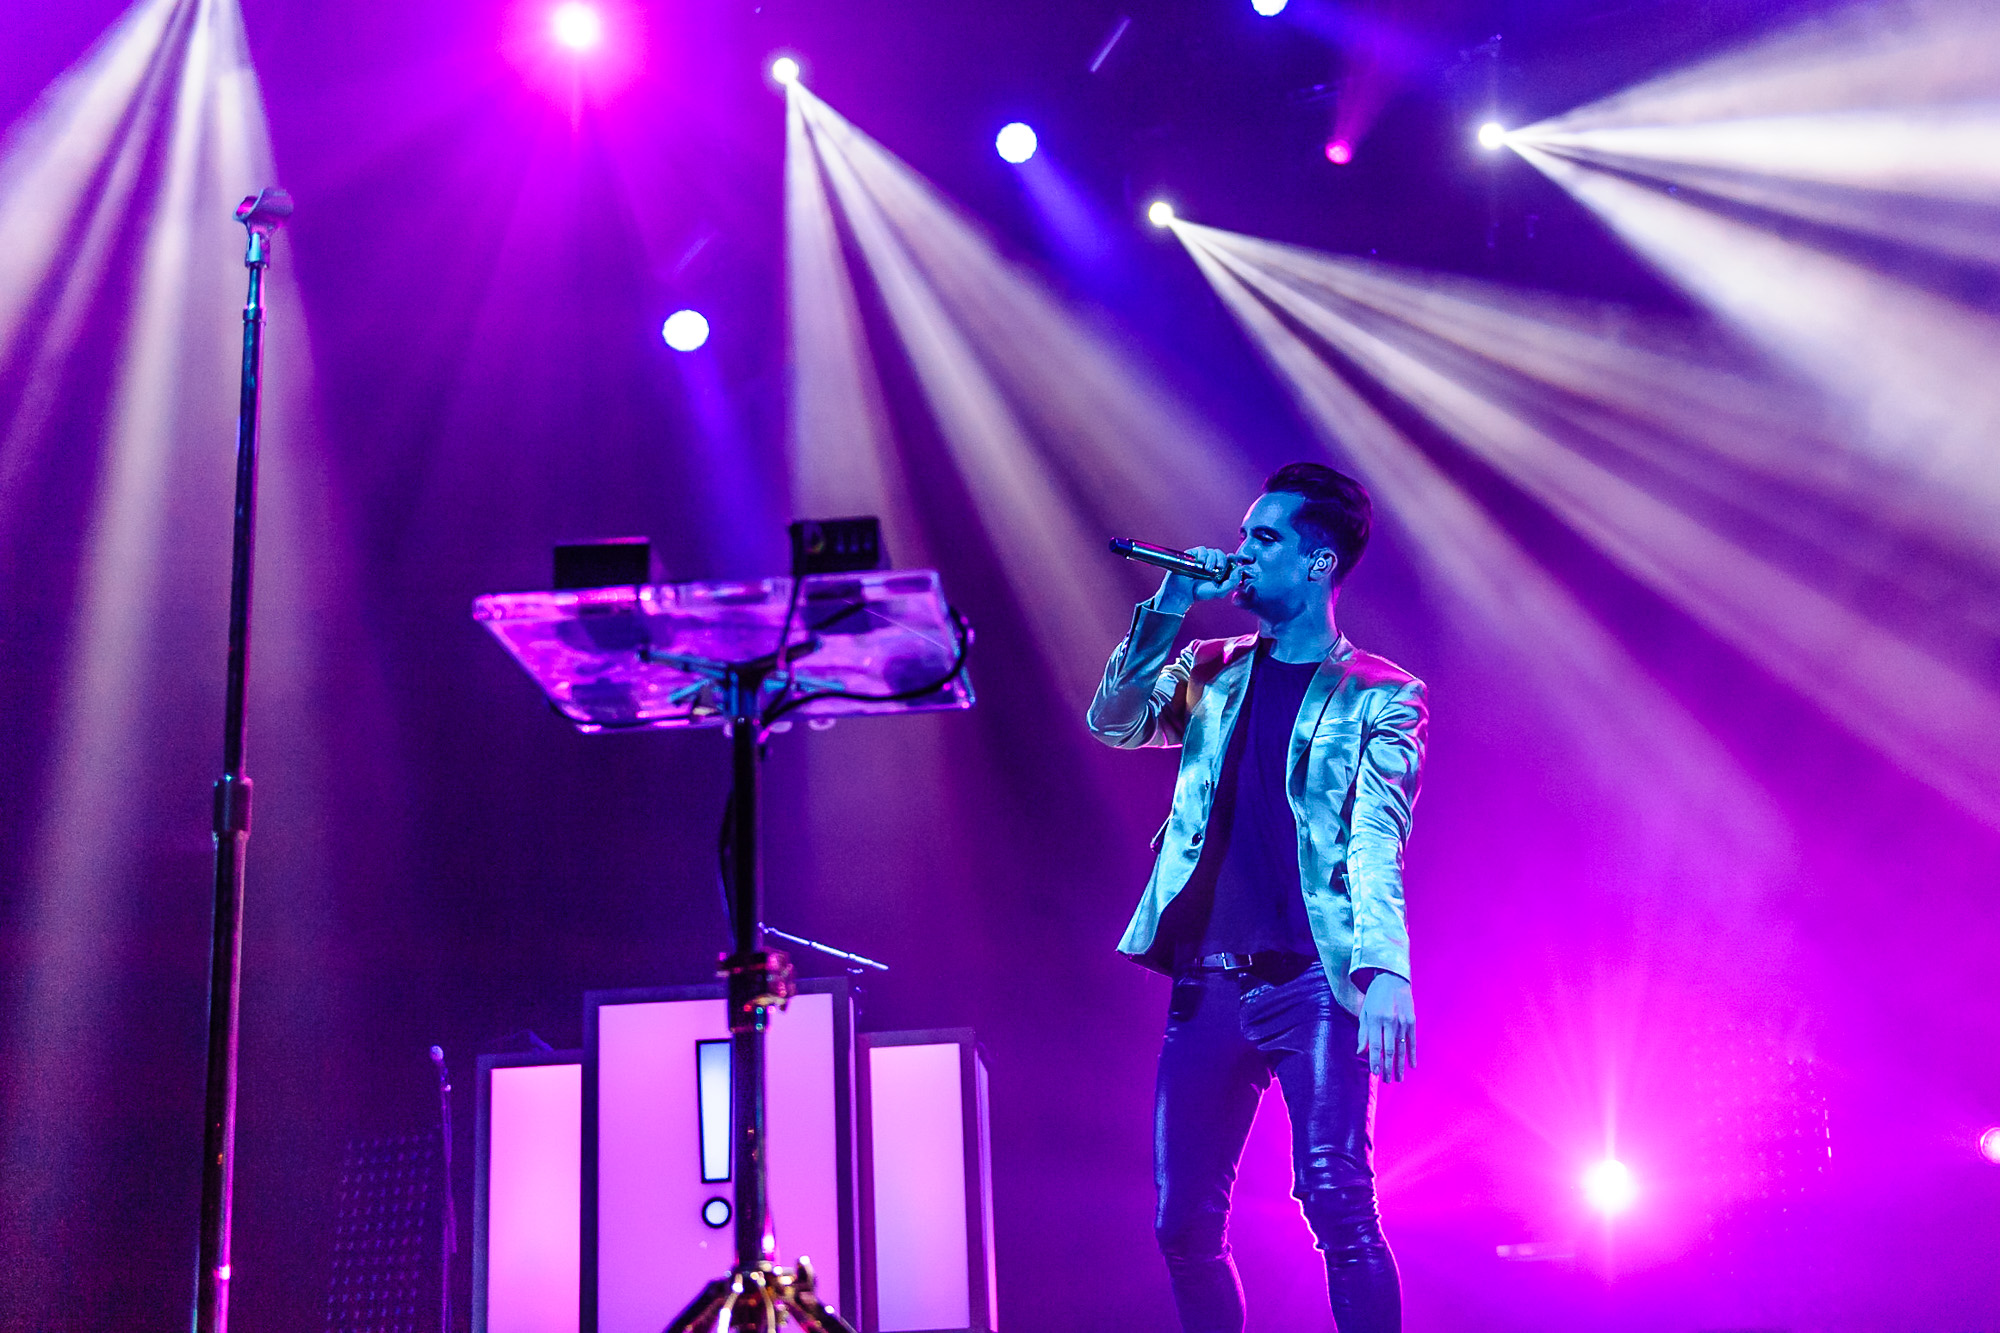 Blu_009020140802Panic_at_the_Disco_performs_in_concert@Mohegan_Sun.jpg